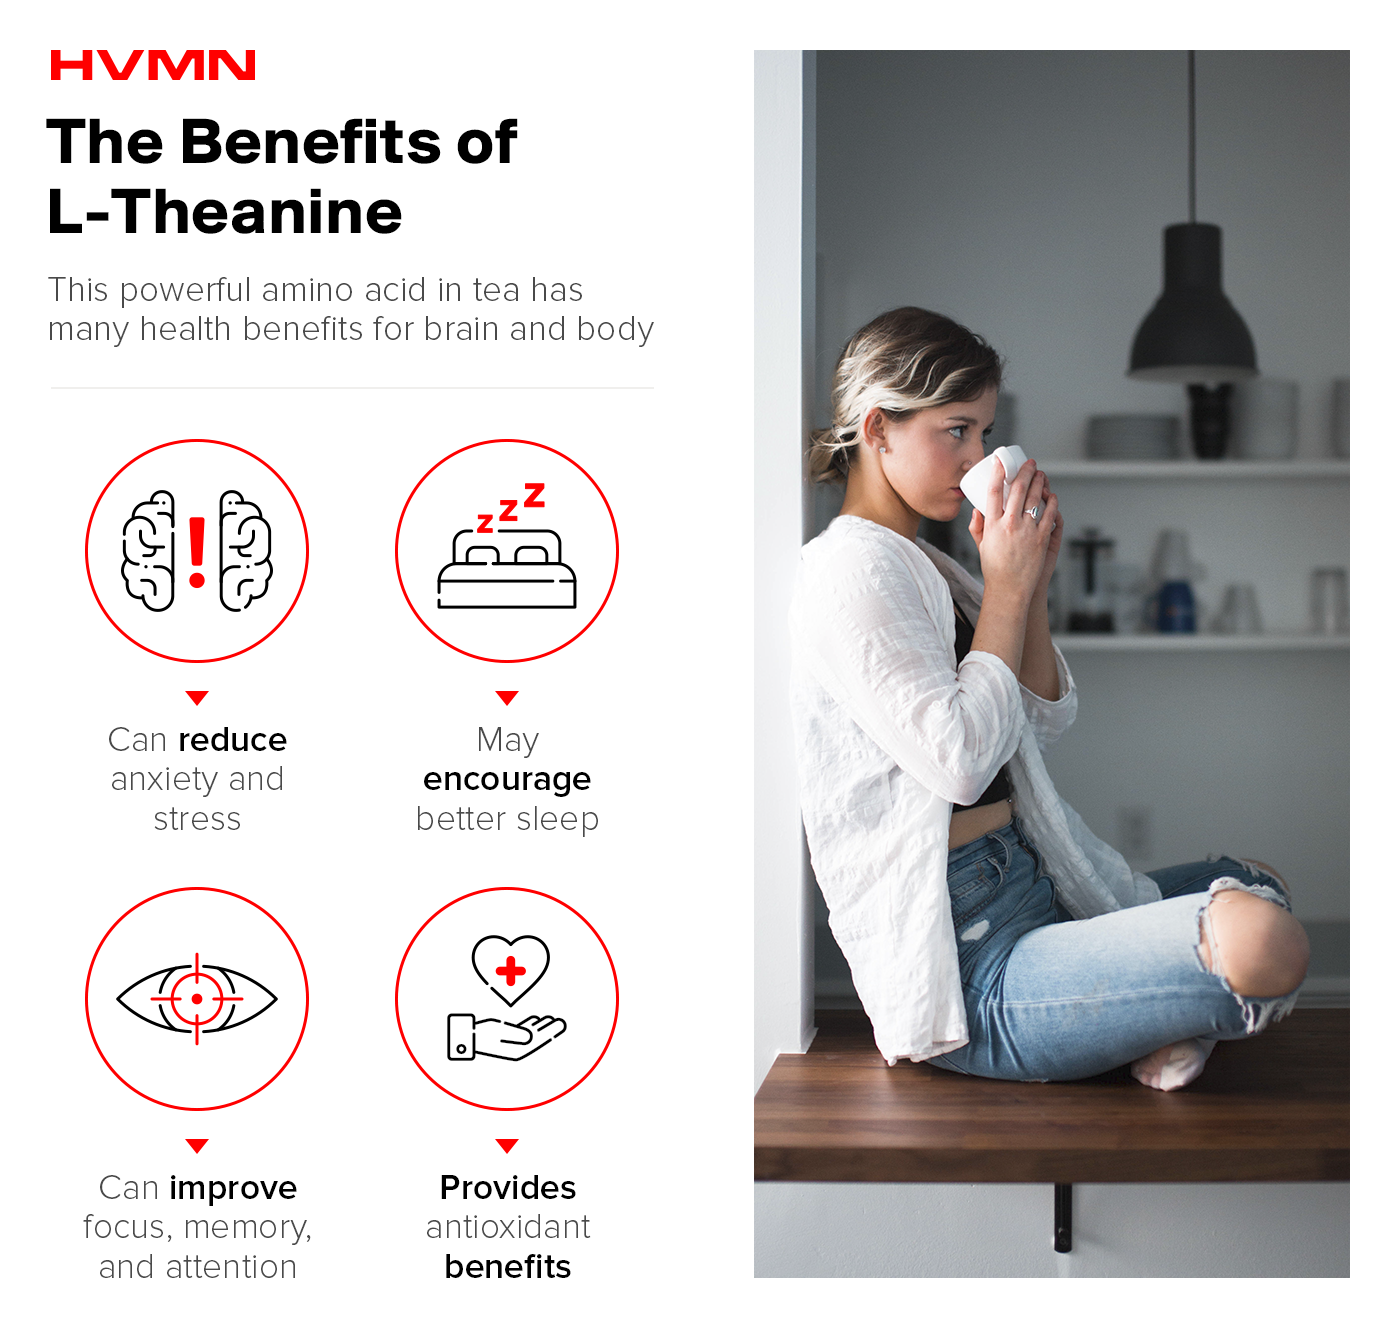 A woman, sitting down and sipping tea, next to drawn illustrations showing the benefits of l-theanine for brain and body